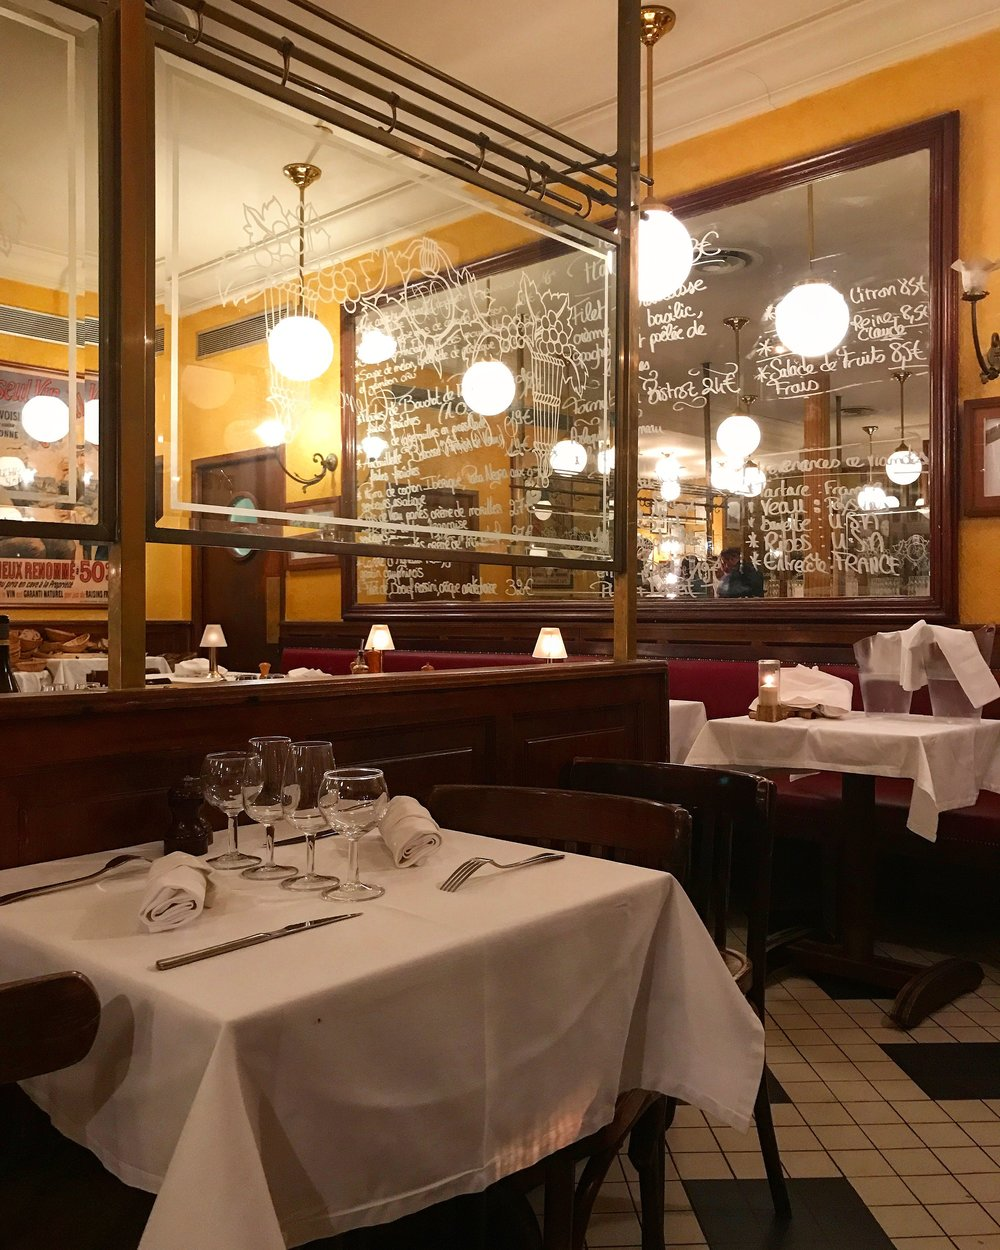 Le Bistrot des Clercs, where we had one of our most memorable dining experiences